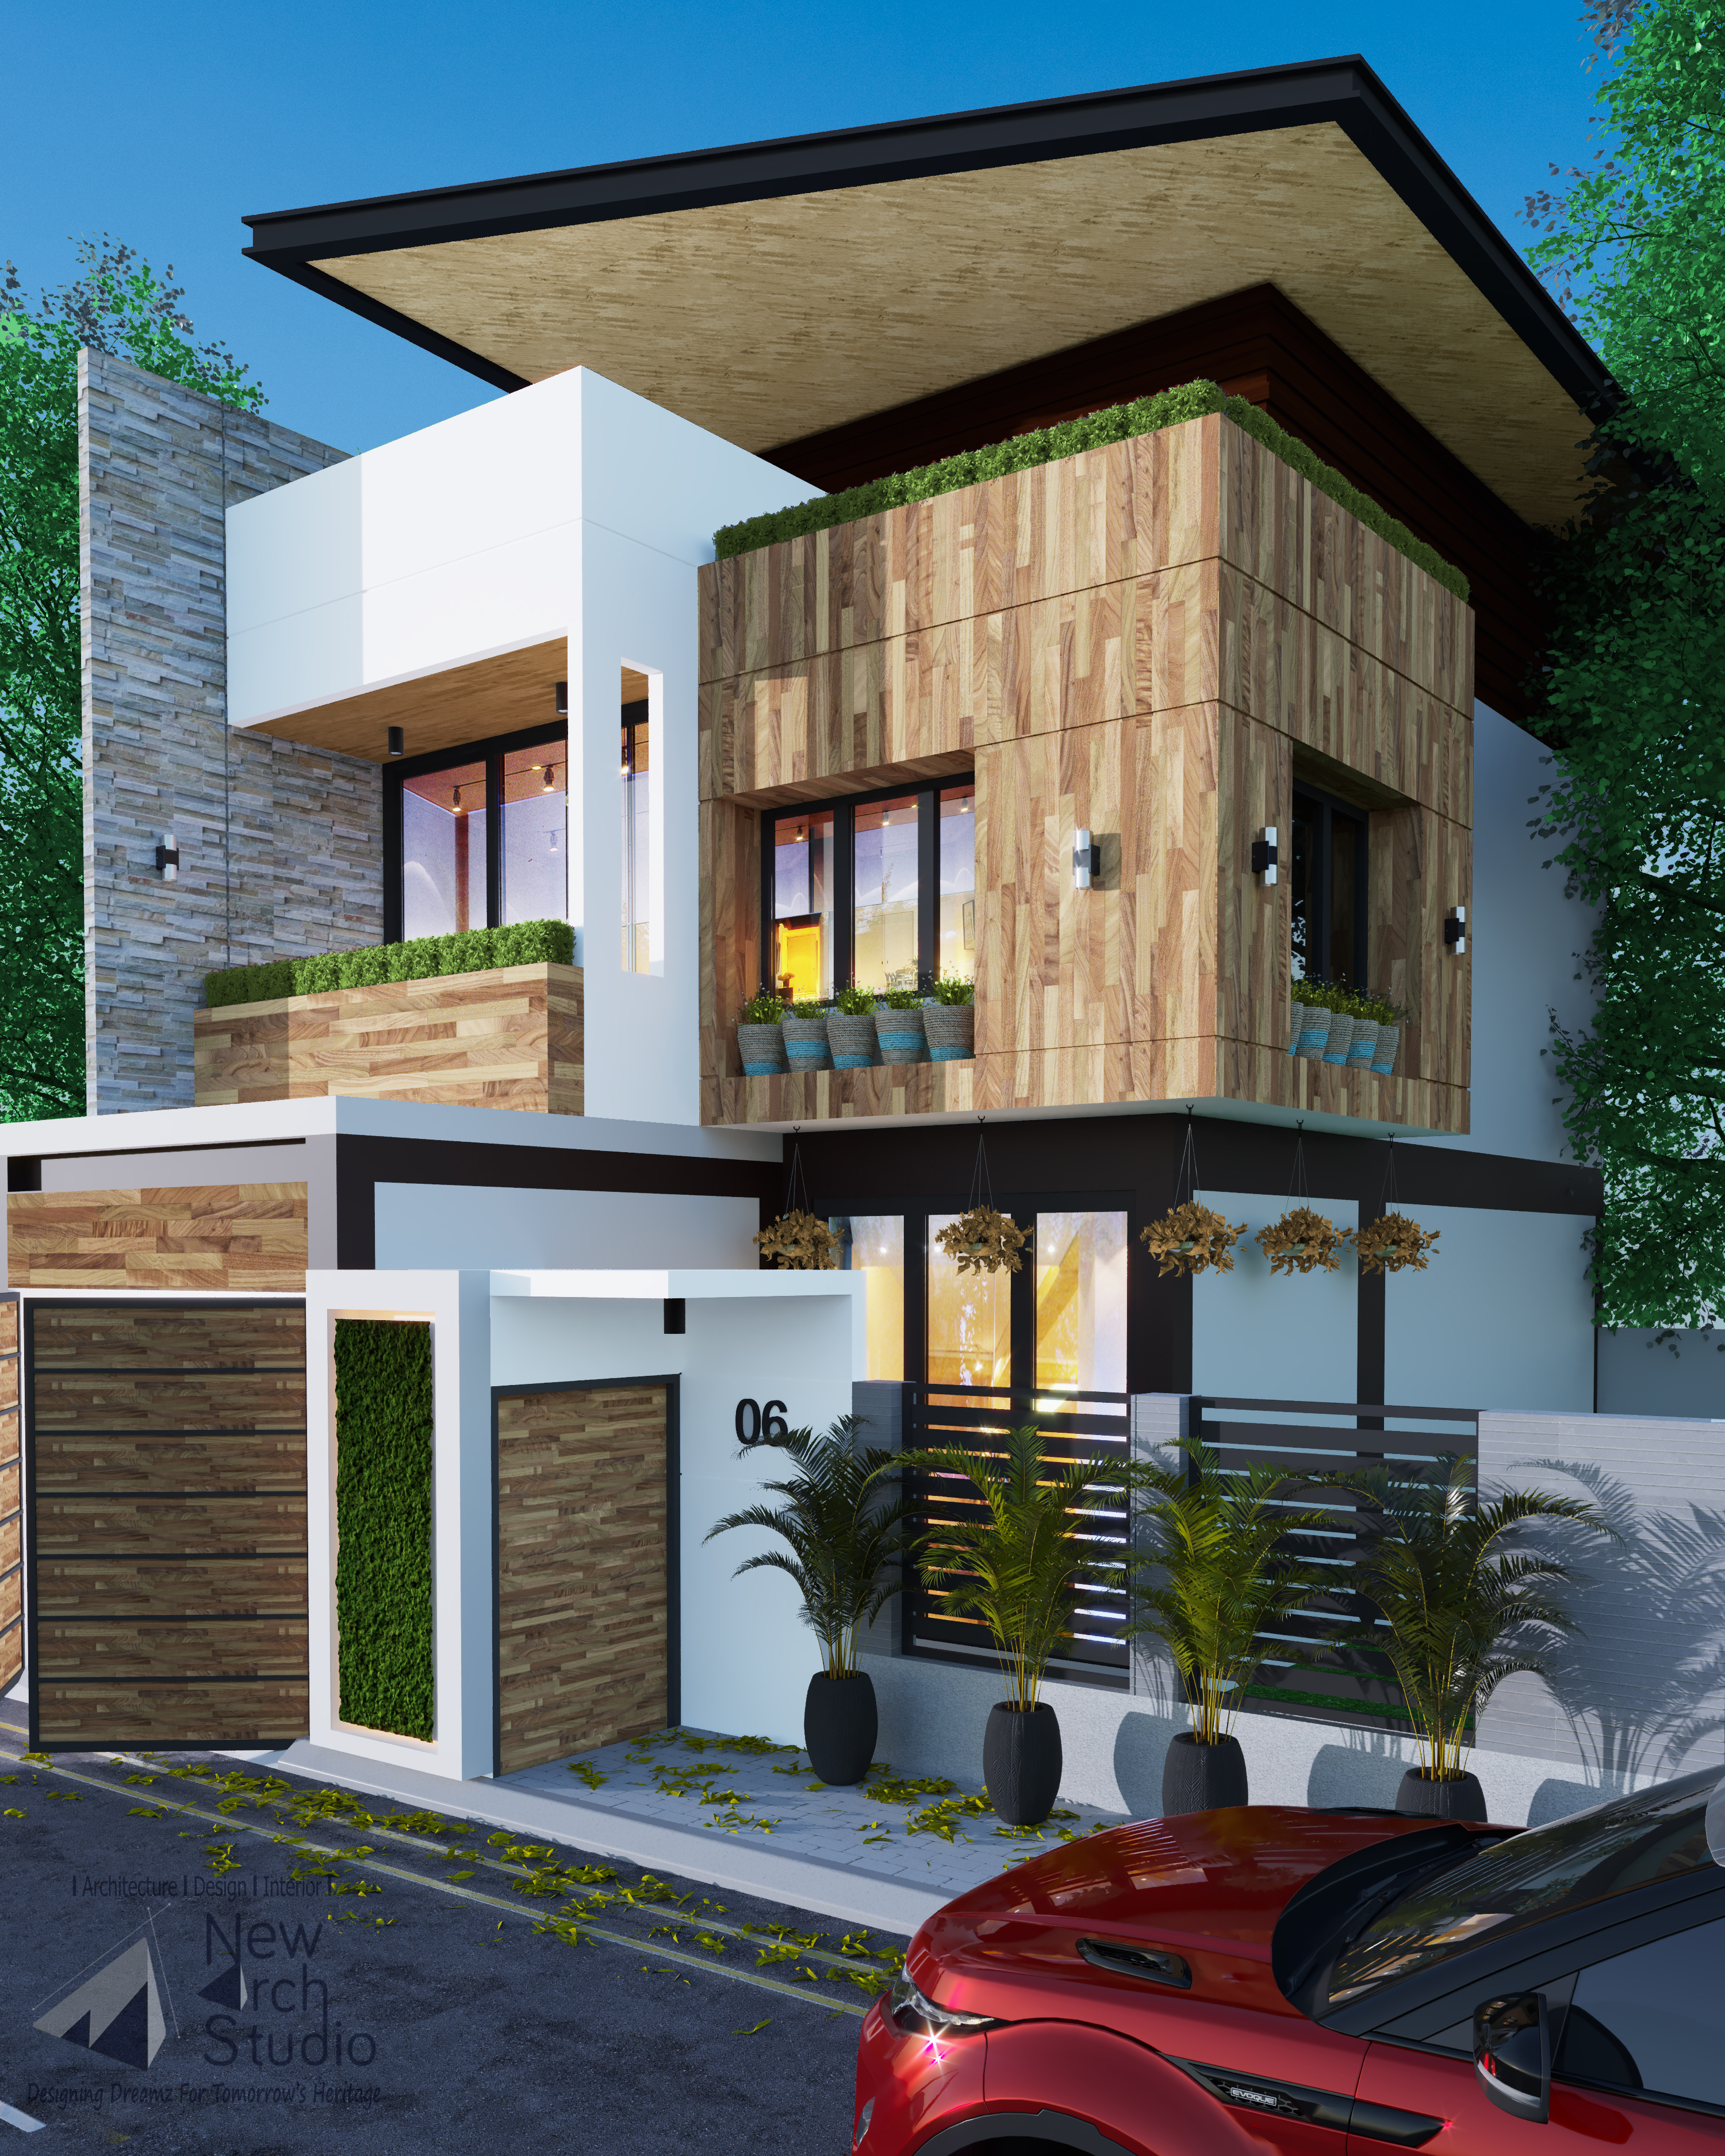 Mr. Gaurav, 250 Yard Villa Exterior Design Done By New Arch Studio